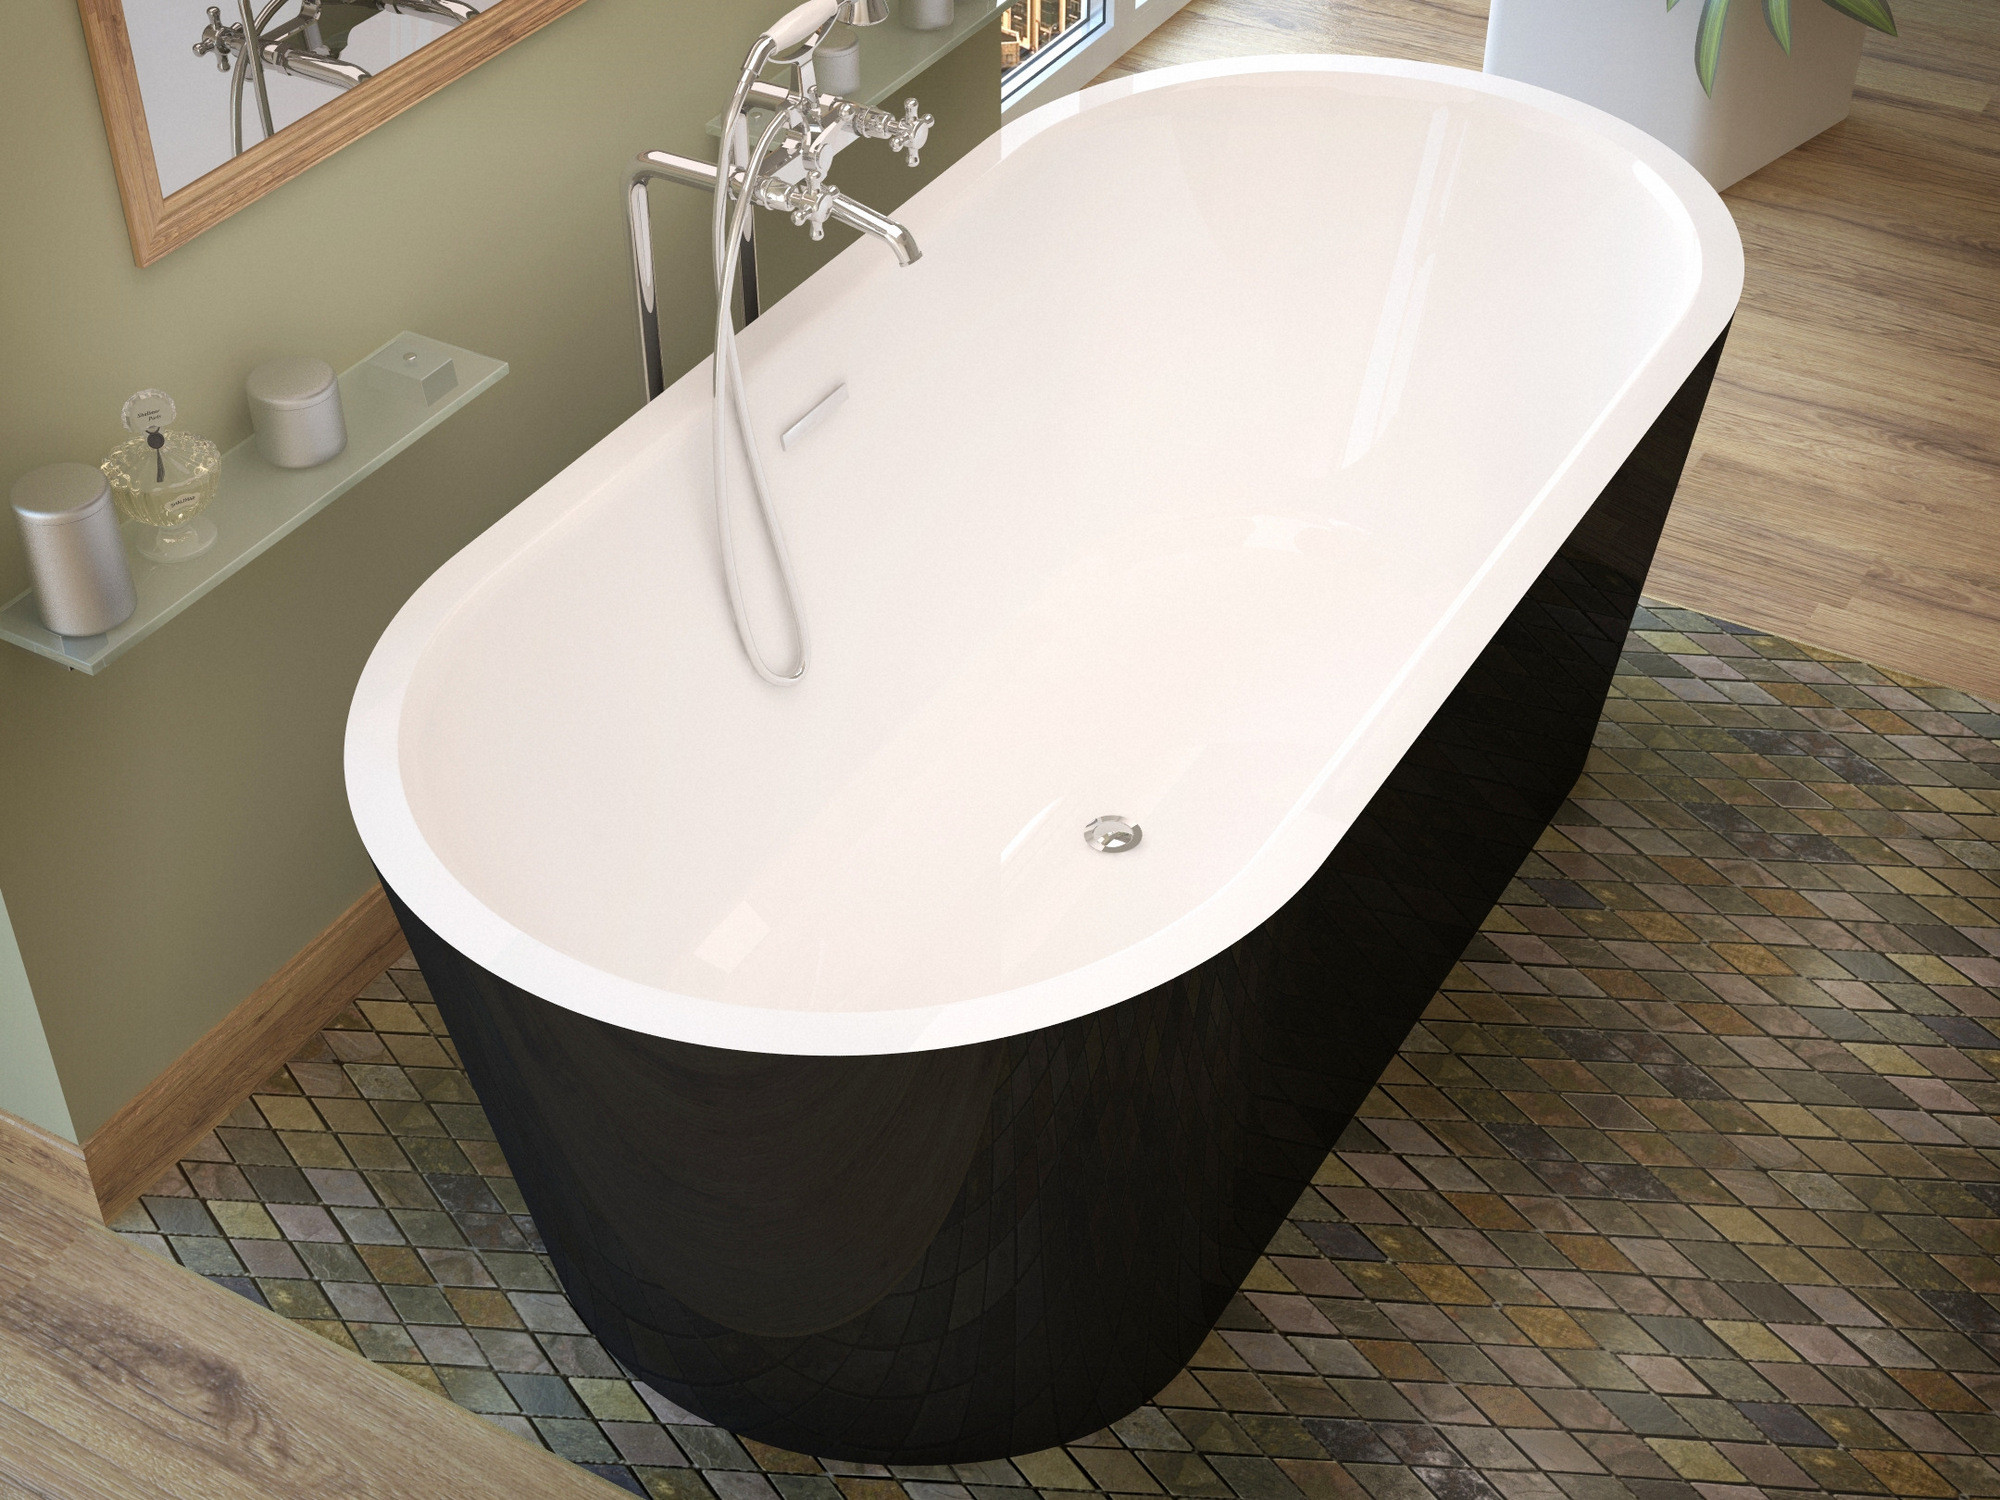 MediTub 3263VY Valley Freestanding One Piece Soaker Tub With Center Drain